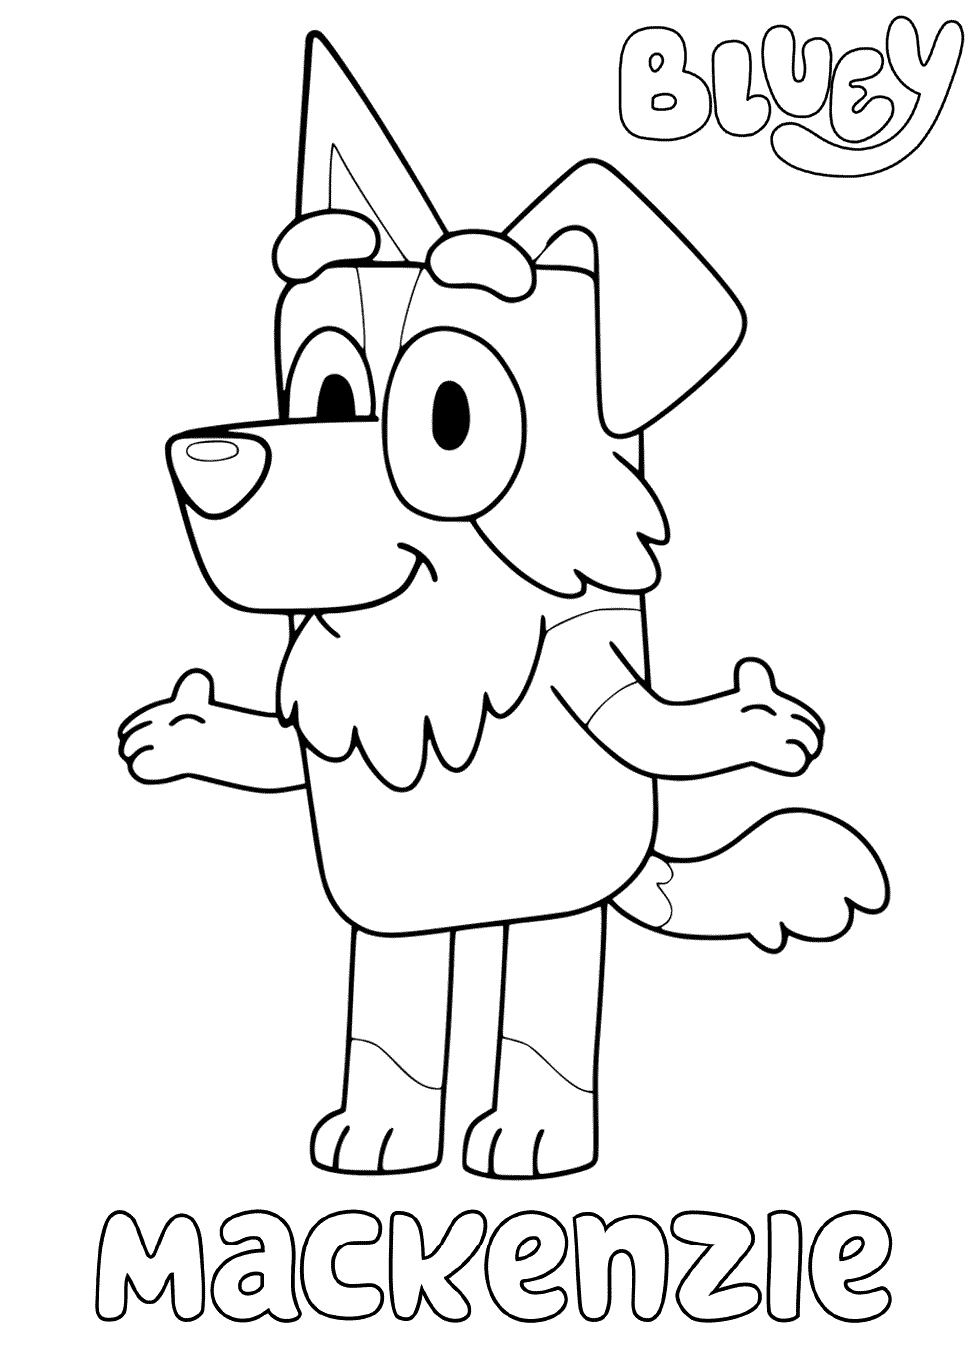 Mackenzie Bluey Coloring Pages